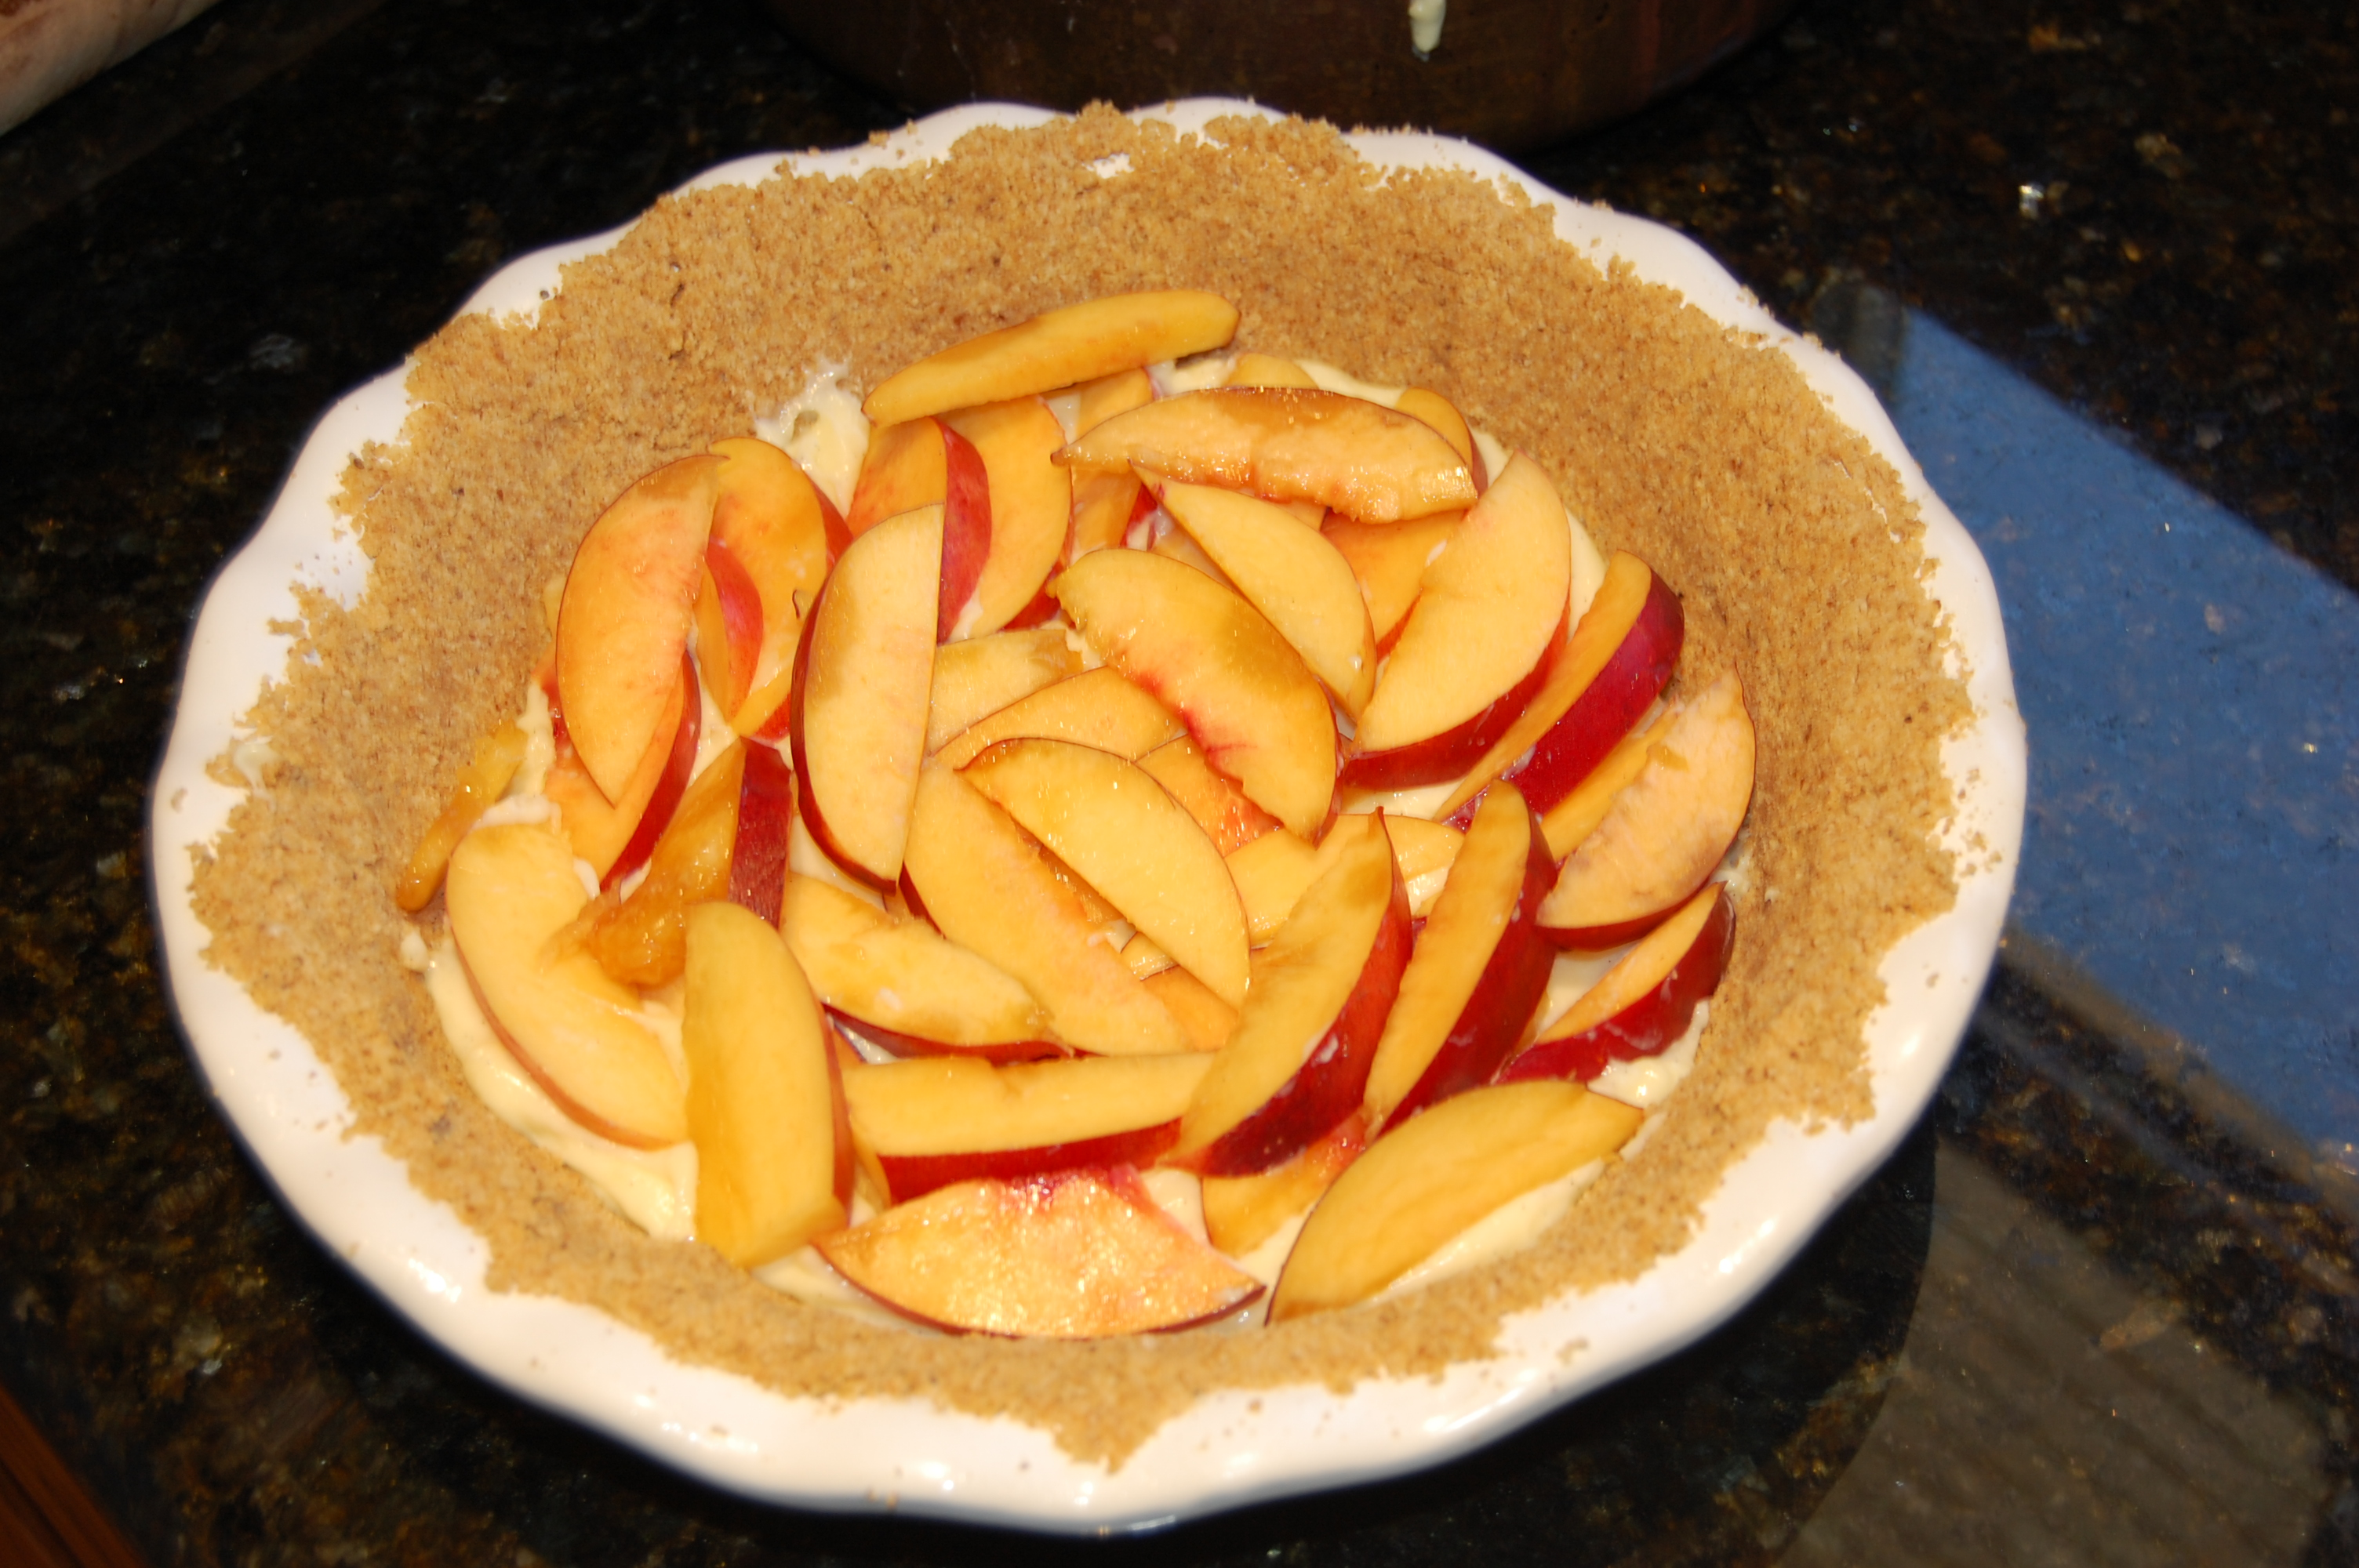 Filling Nectarine Cream Pie with Fruit